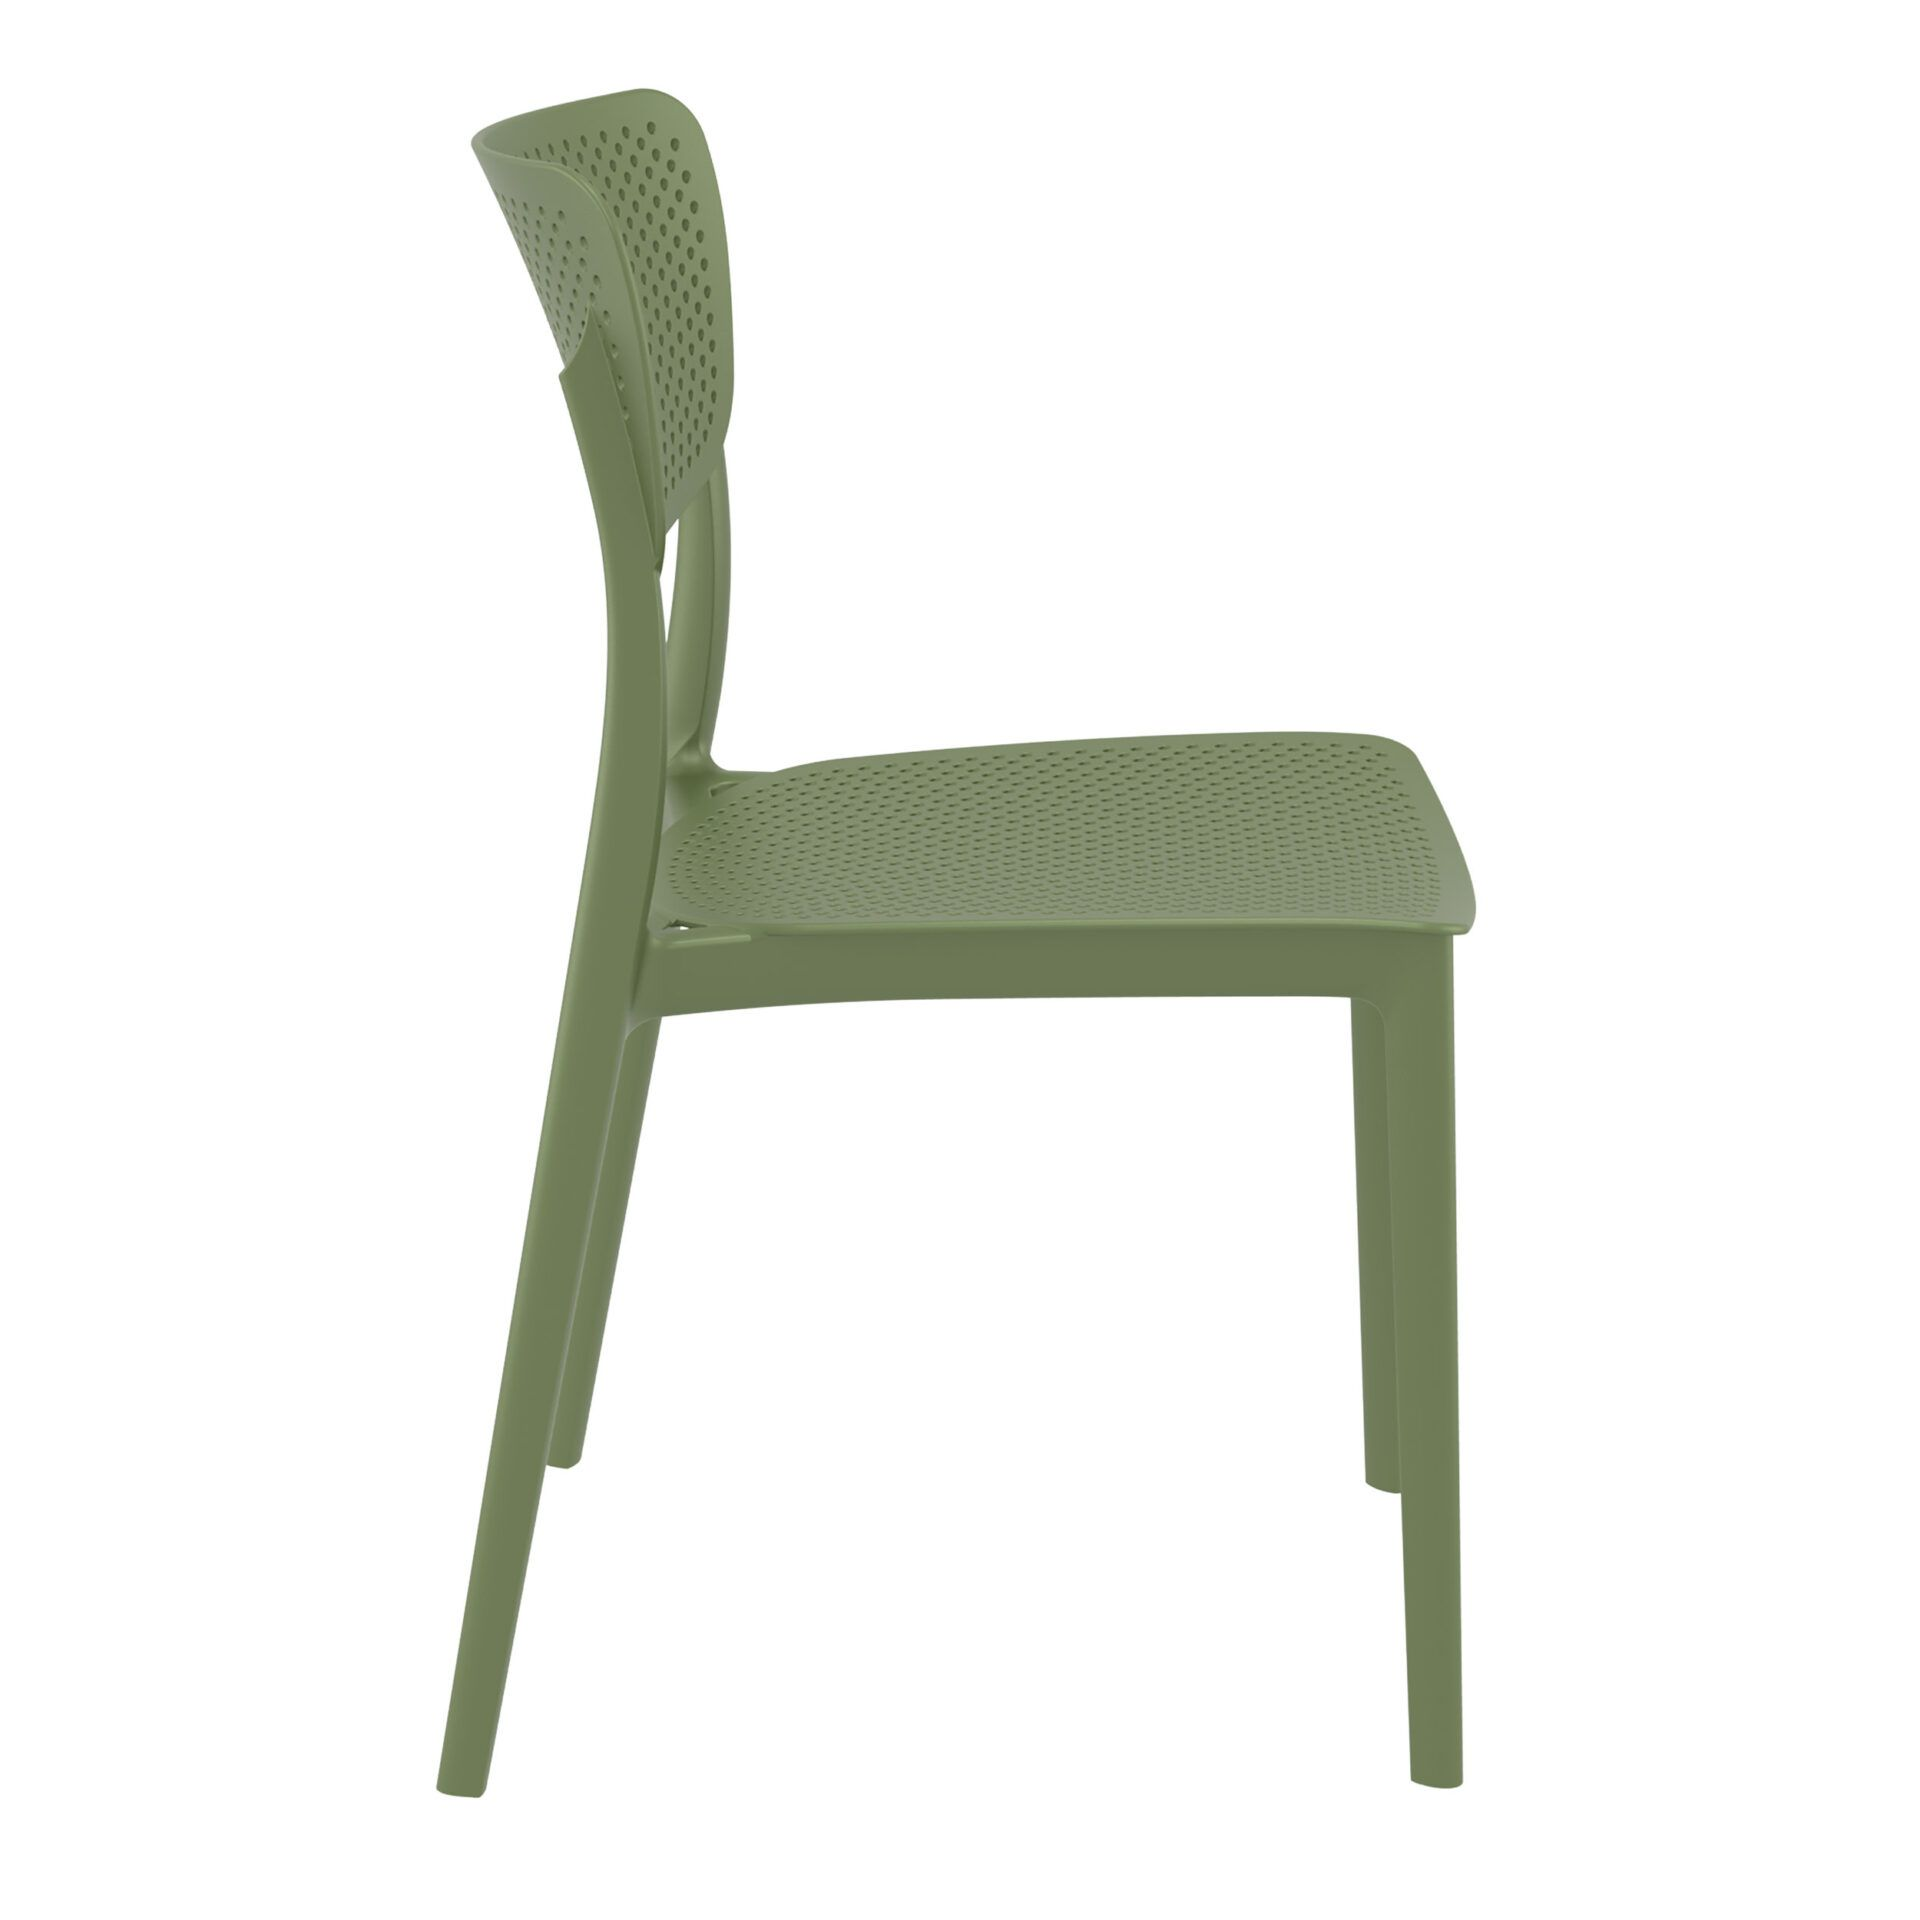 polypropylene hospitality seating lucy chair olive green side